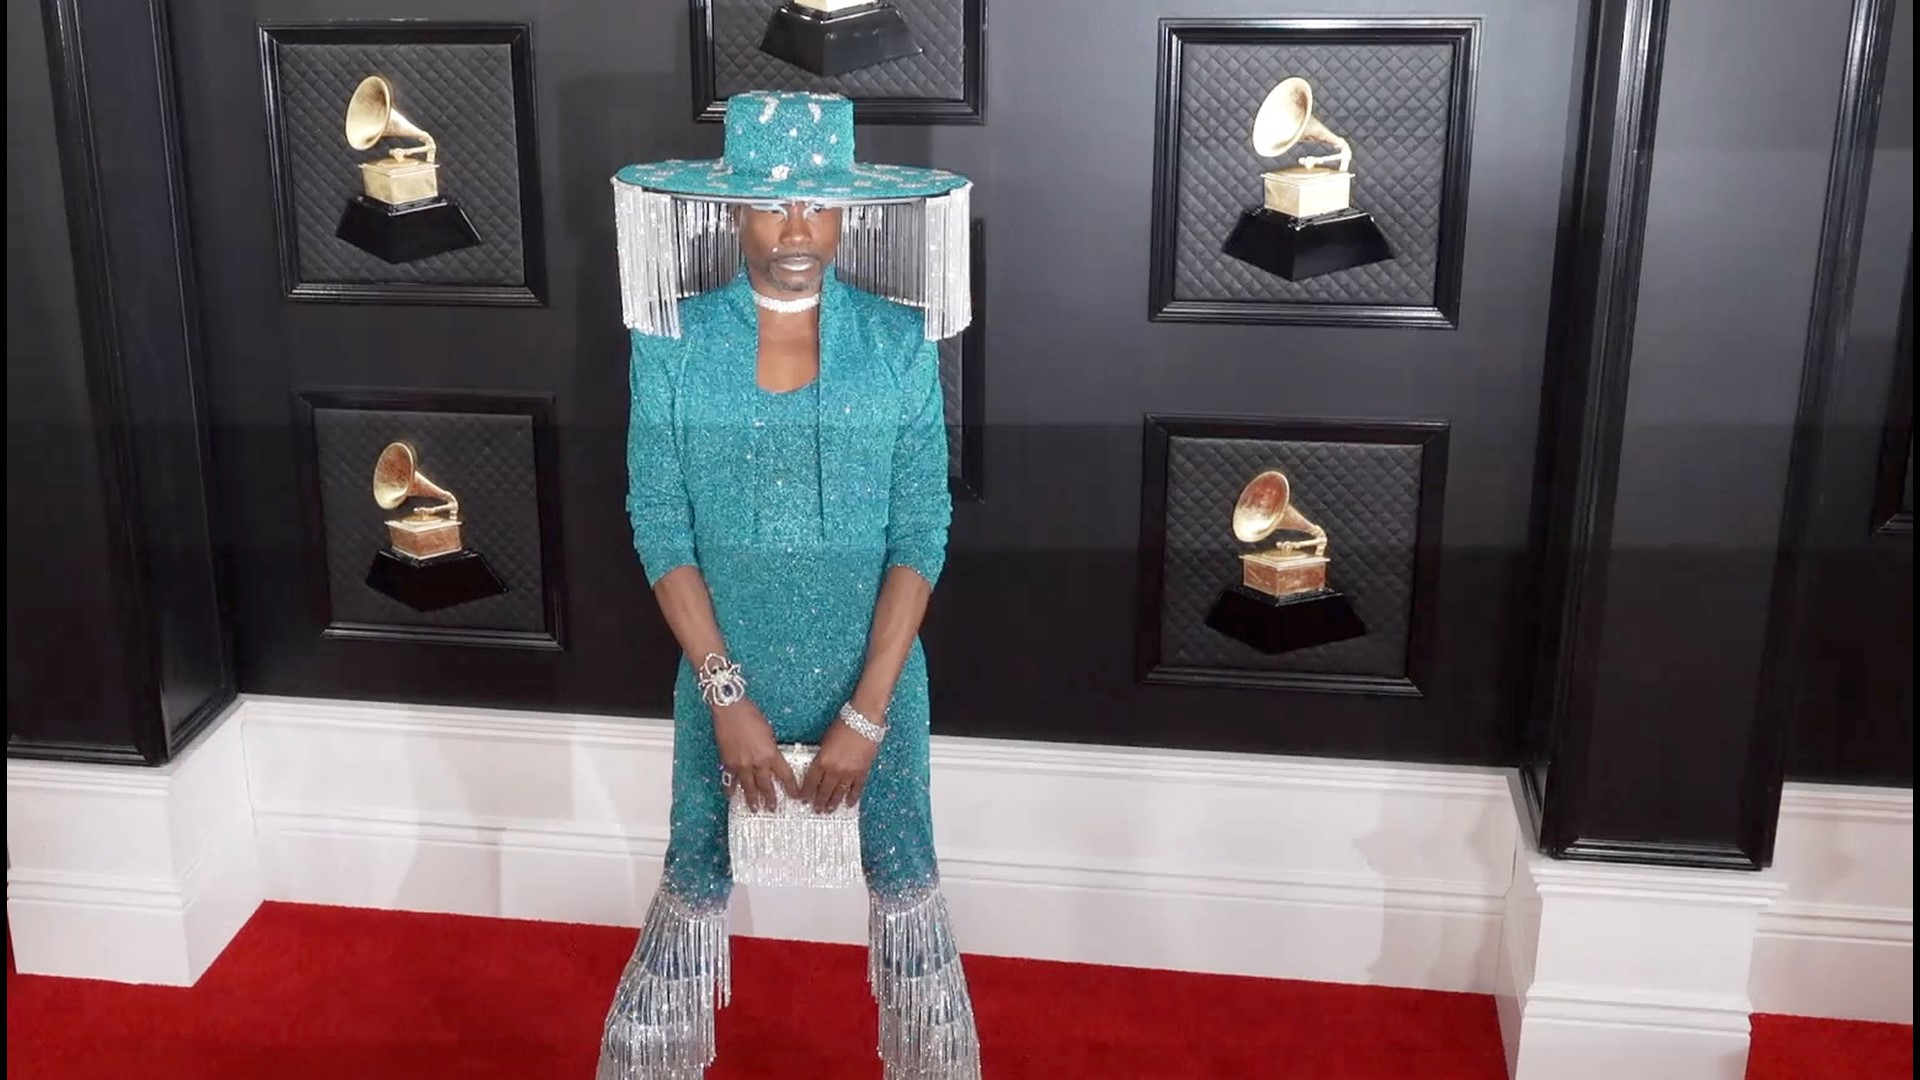 grammys announce nominees for 2021 show ksdk com these were all the best looks on the grammys red carpet